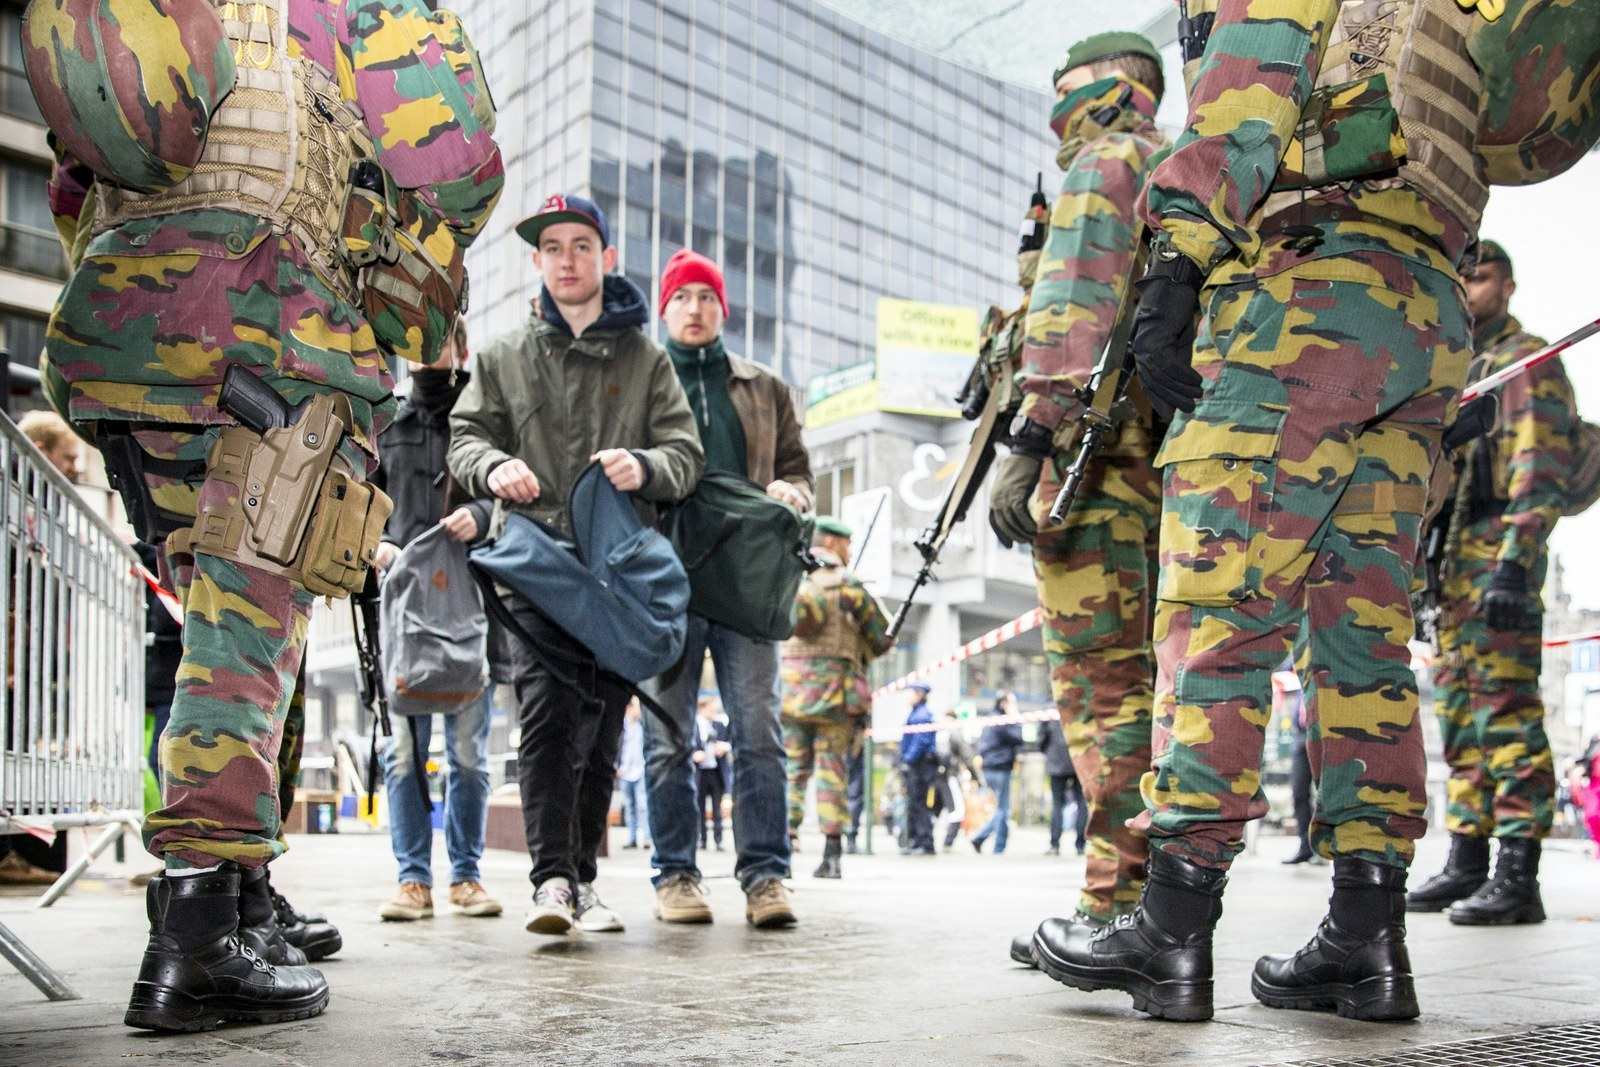 Sources Say Belgium Attackers Originally Planned To Strike The Day After Easter